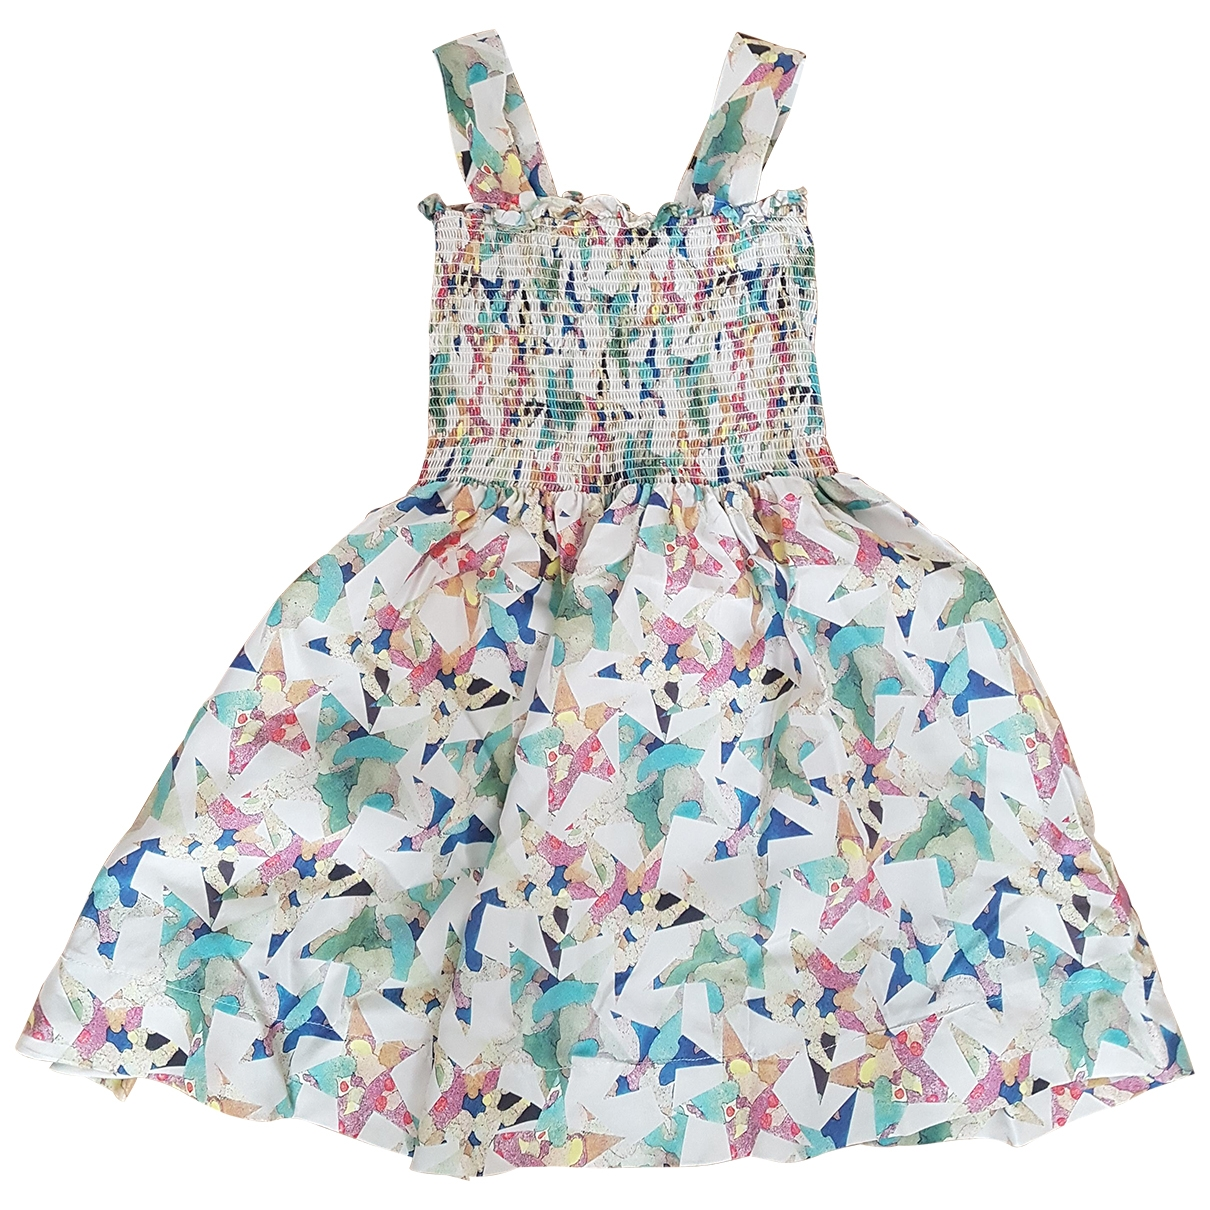 Stella Mccartney \N Multicolour Silk dress for Kids 4 years - until 40 inches UK